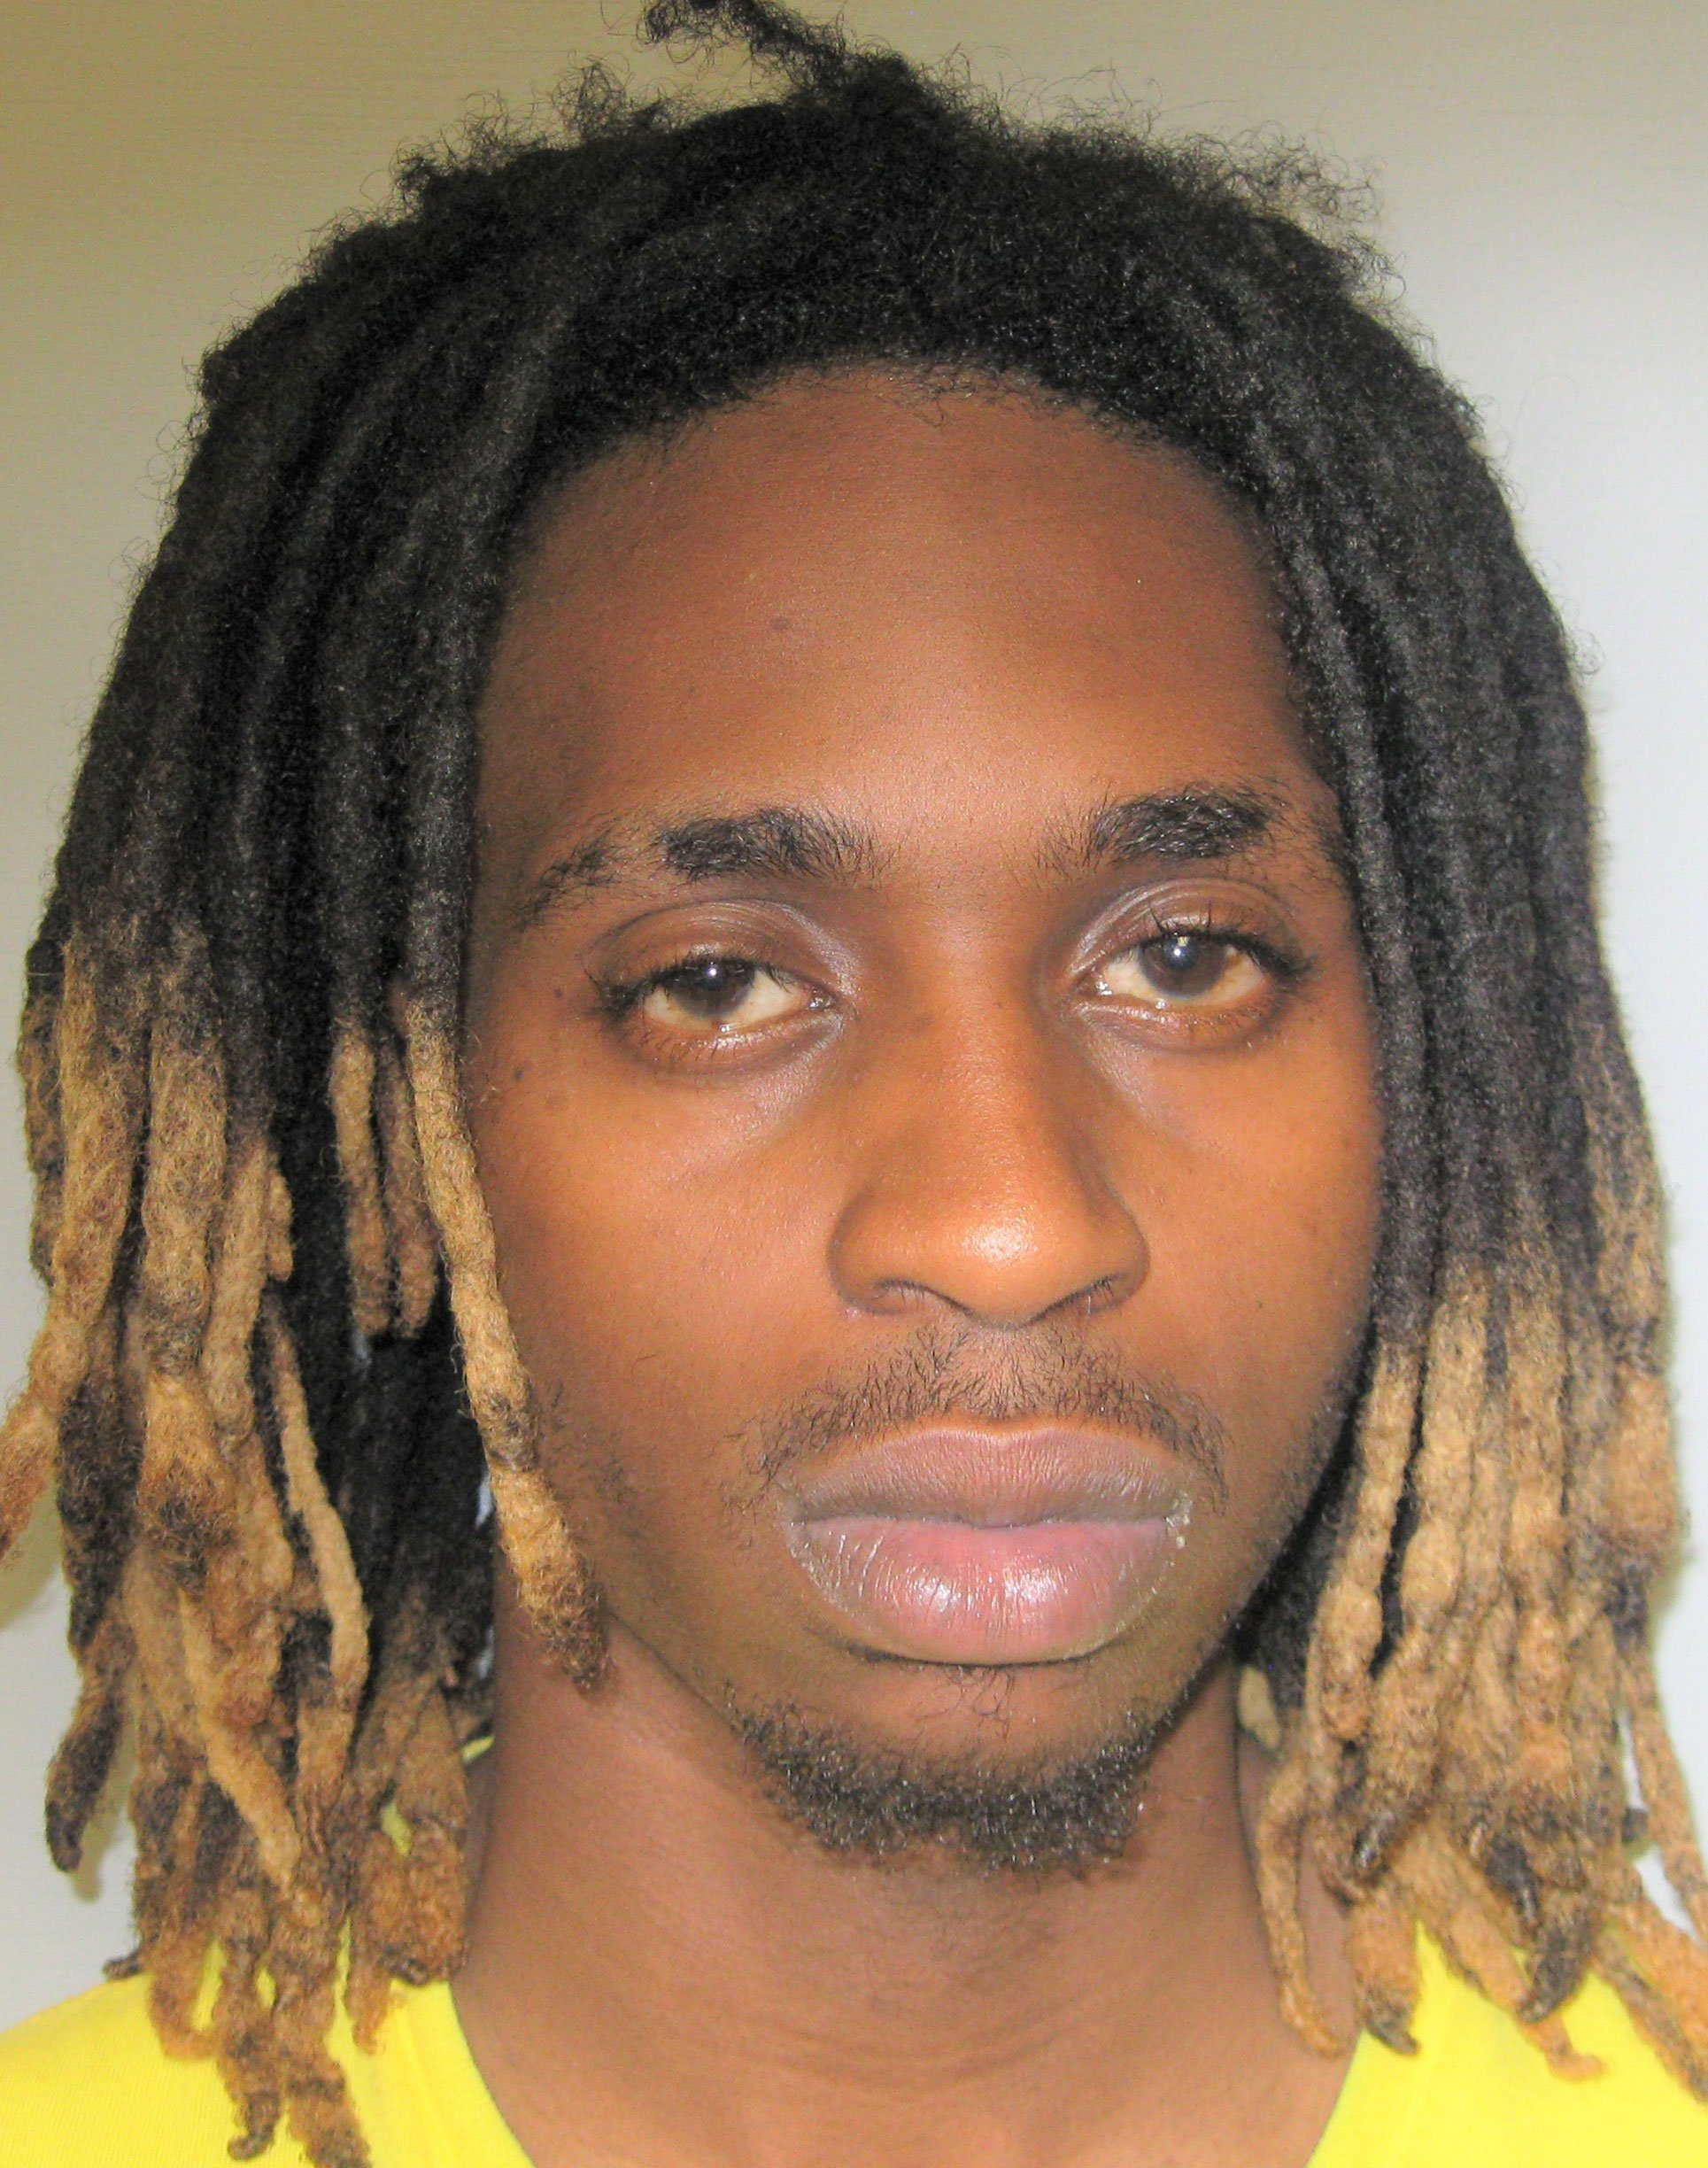 Tyree Alexander Powell (source: Burke County Sheriff's Office)